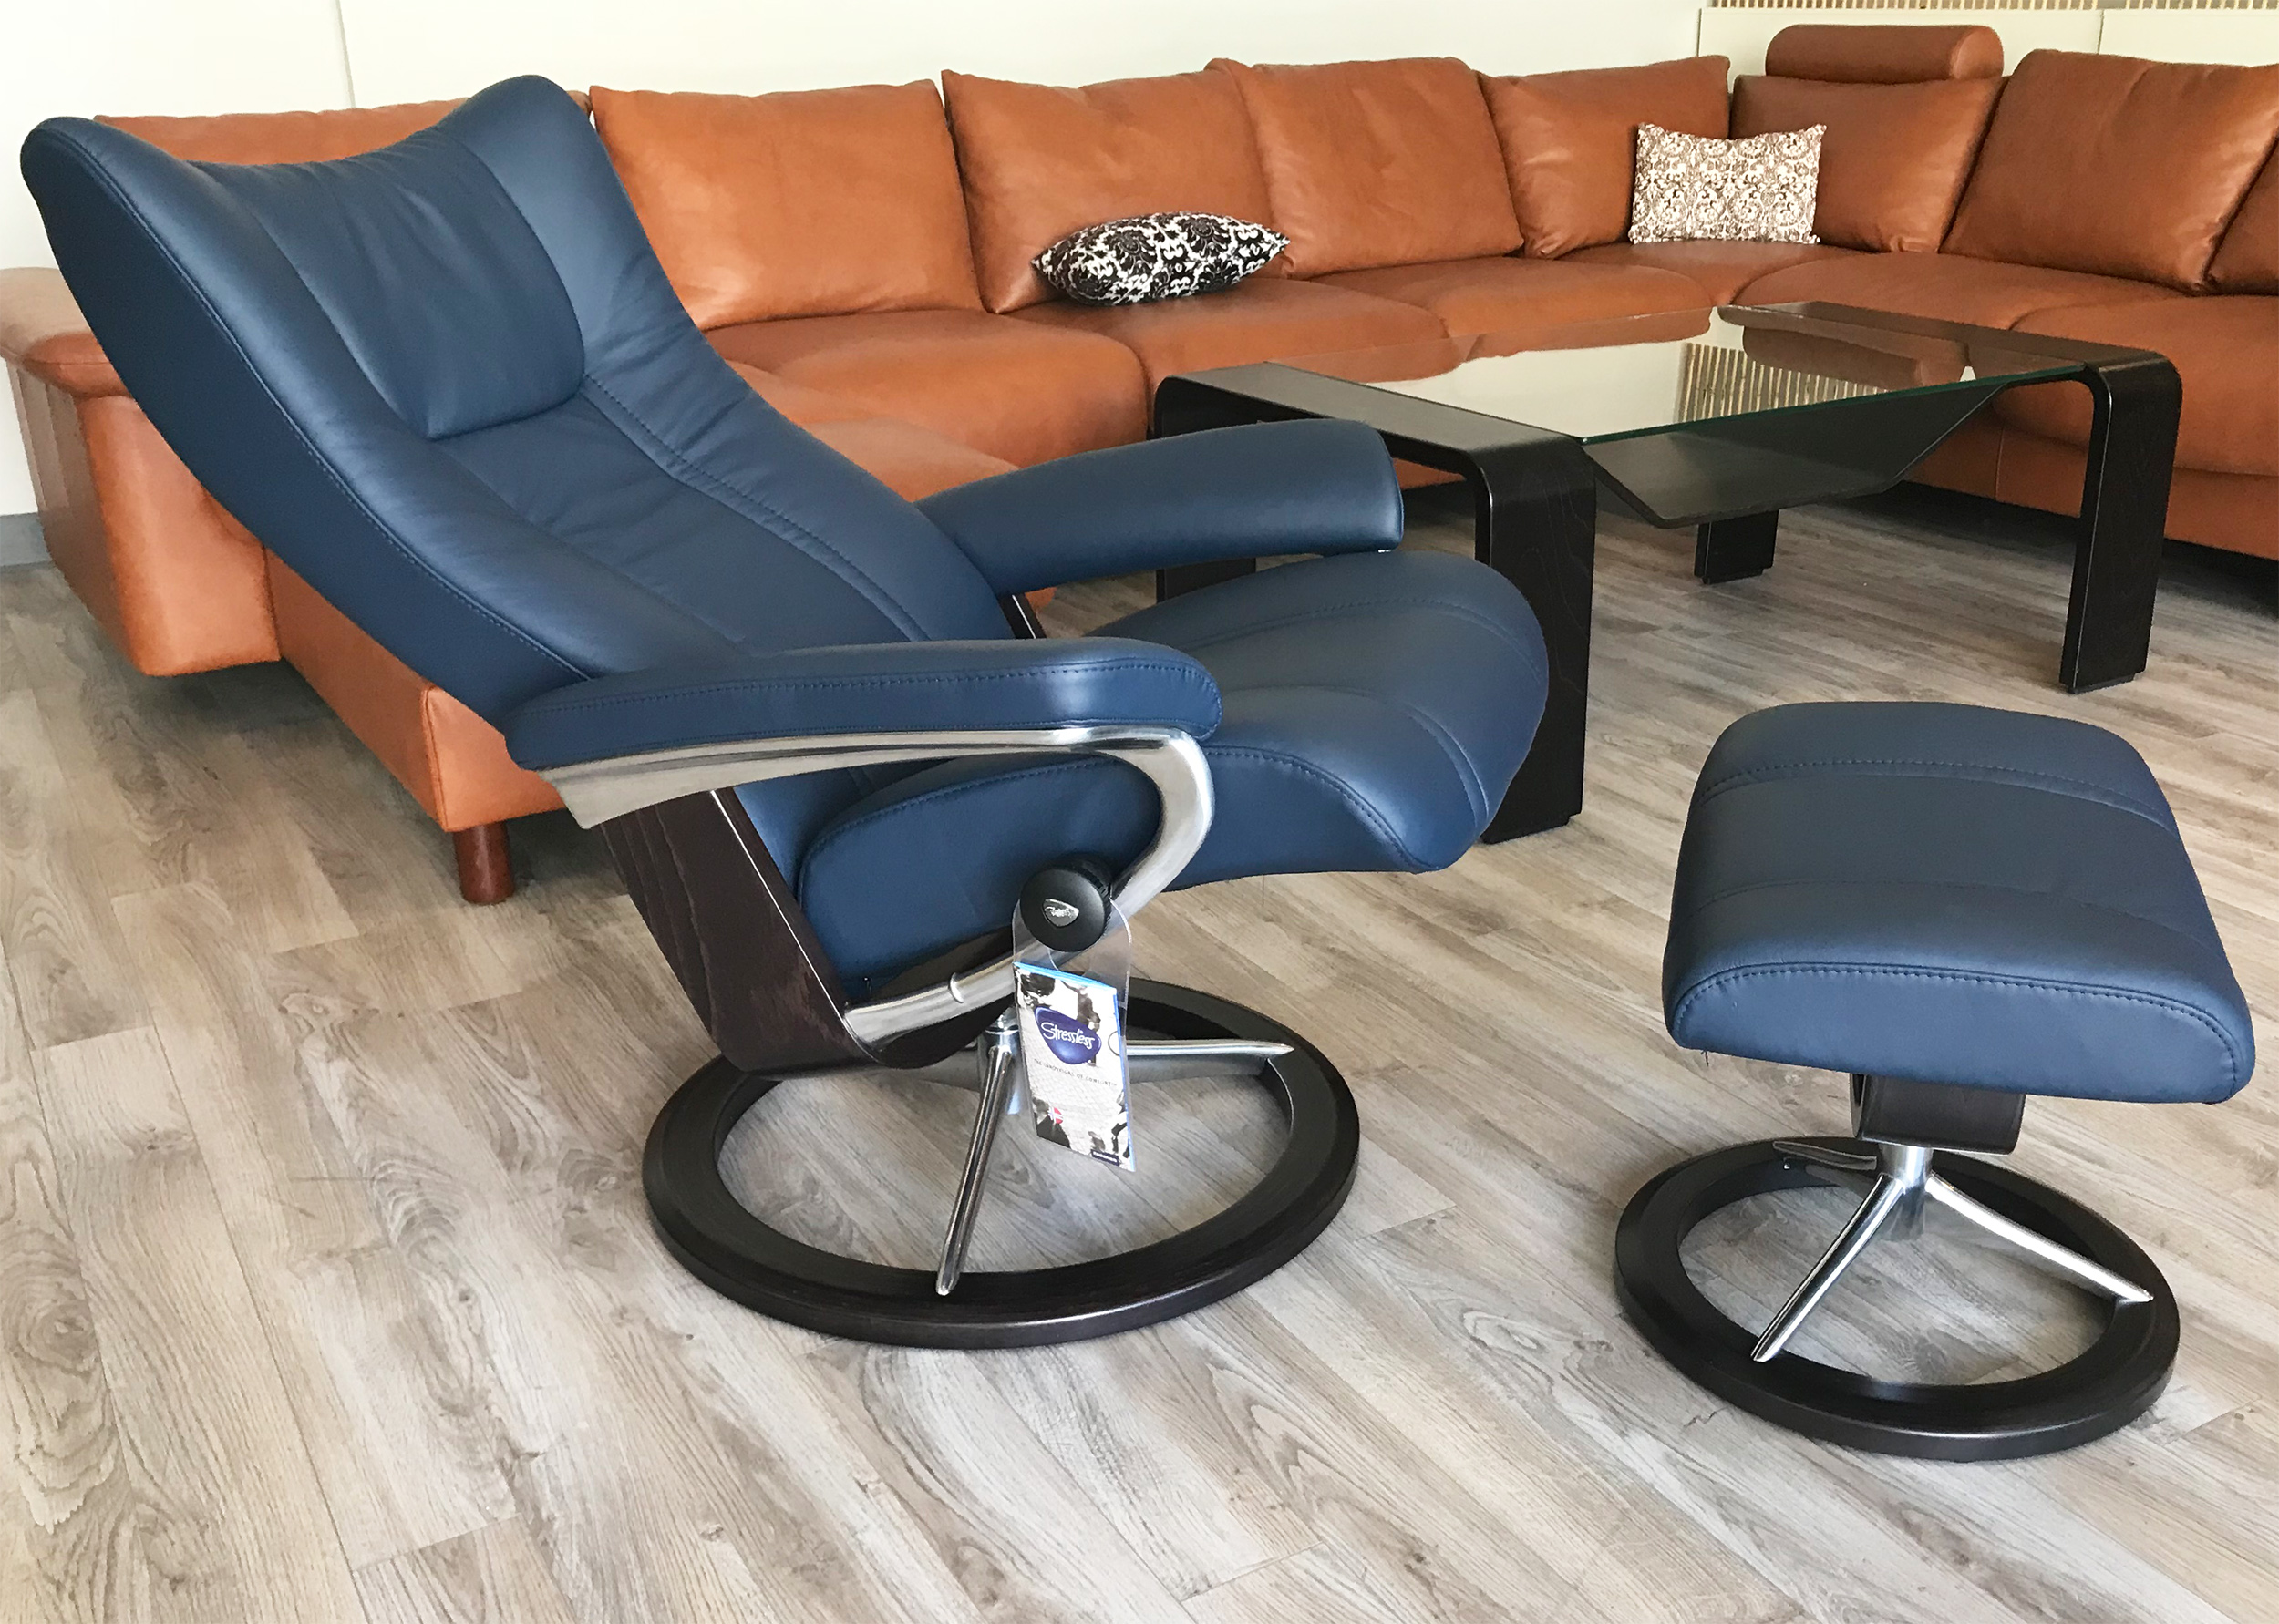 Prime Stressless Wing Recliner Chair And Ottoman In Paloma Black Leather By Ekornes Caraccident5 Cool Chair Designs And Ideas Caraccident5Info